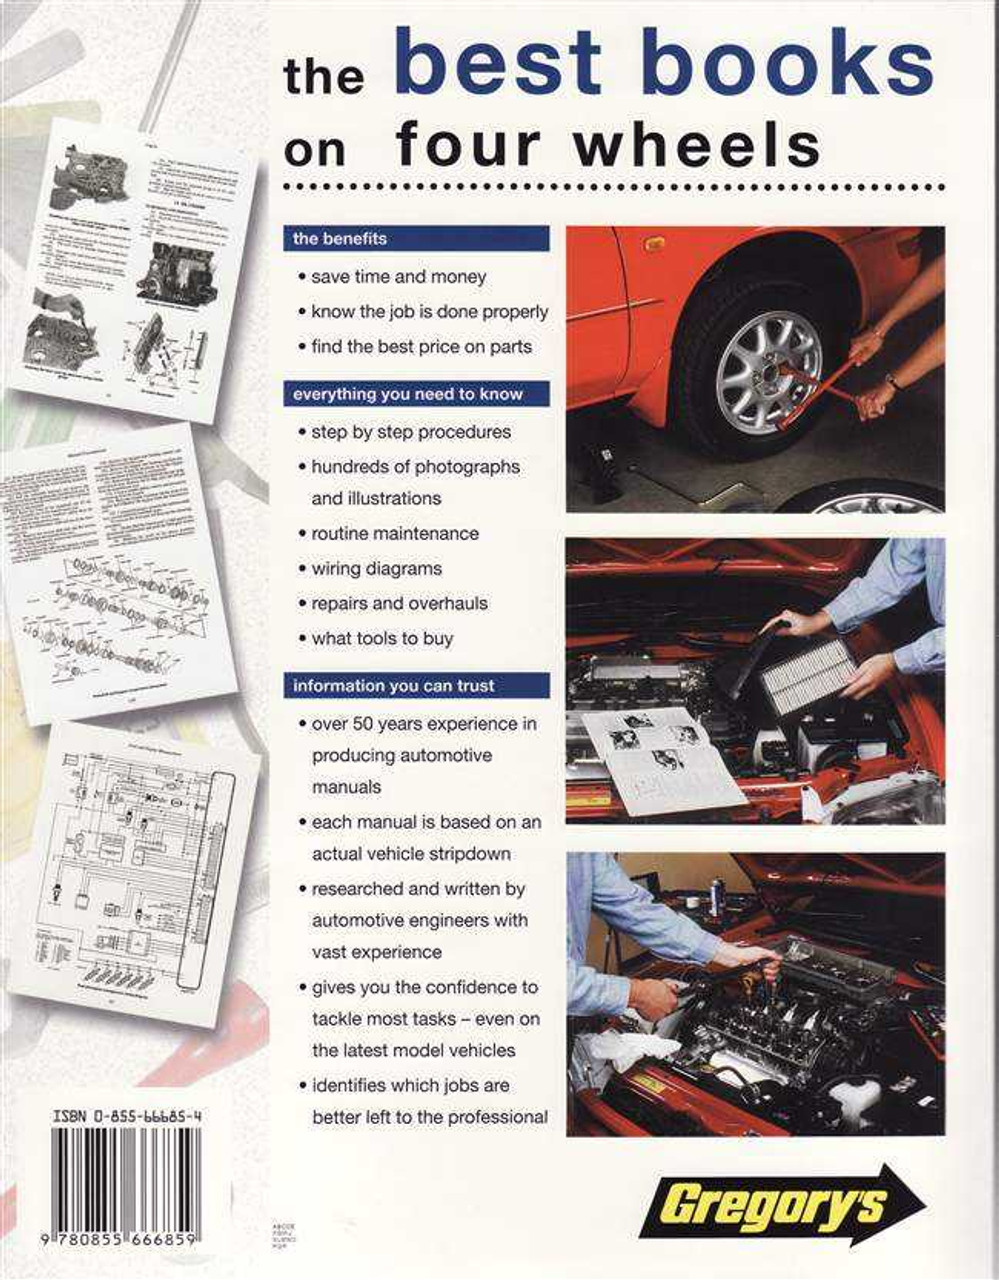 daihatsu charade workshop manual pdf